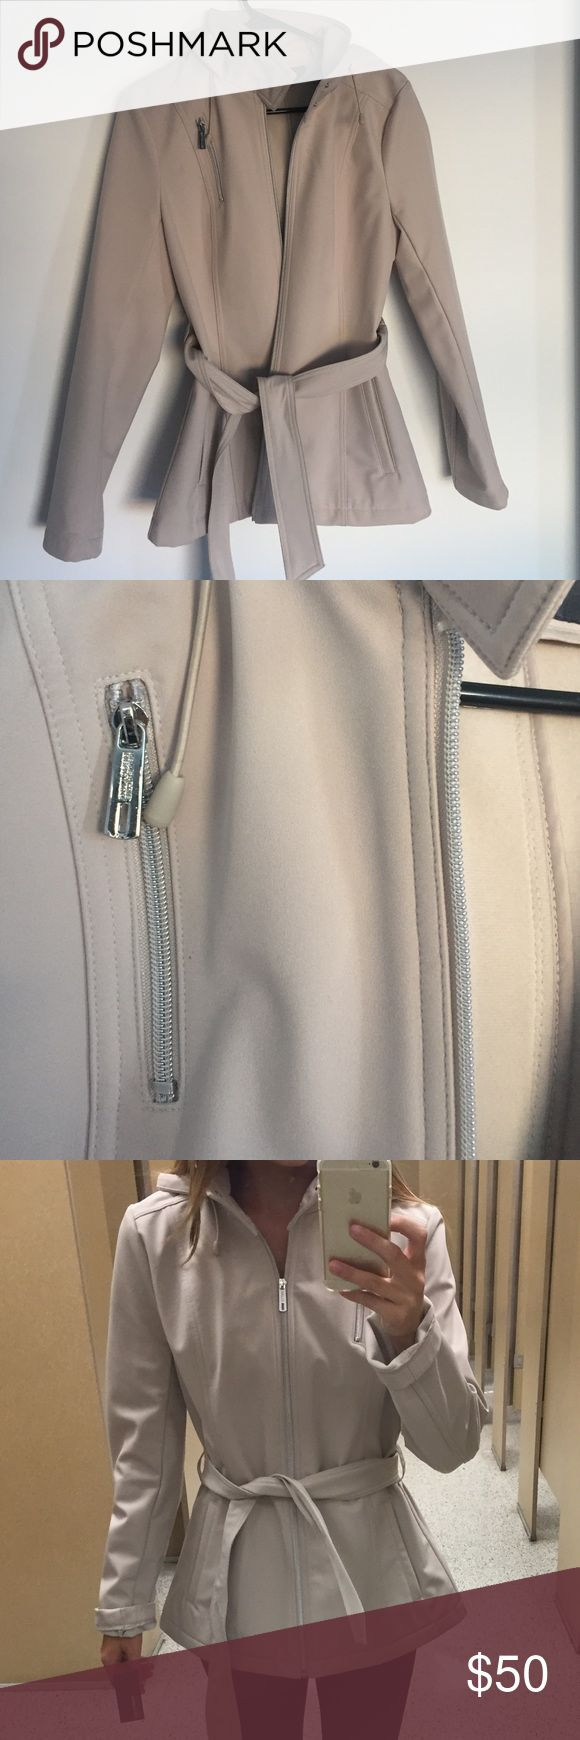 Kenneth Cole Waterproof Jacket Kenneth Cole zip up jacket with belt. Interior is soft and warm, exterior is water resistant. Perfect for rainy days in spring and fall. Color is like a gray/taupe mixture. In great condition. Using brand for exposure only. Zara Jackets & Coats Utility Jackets